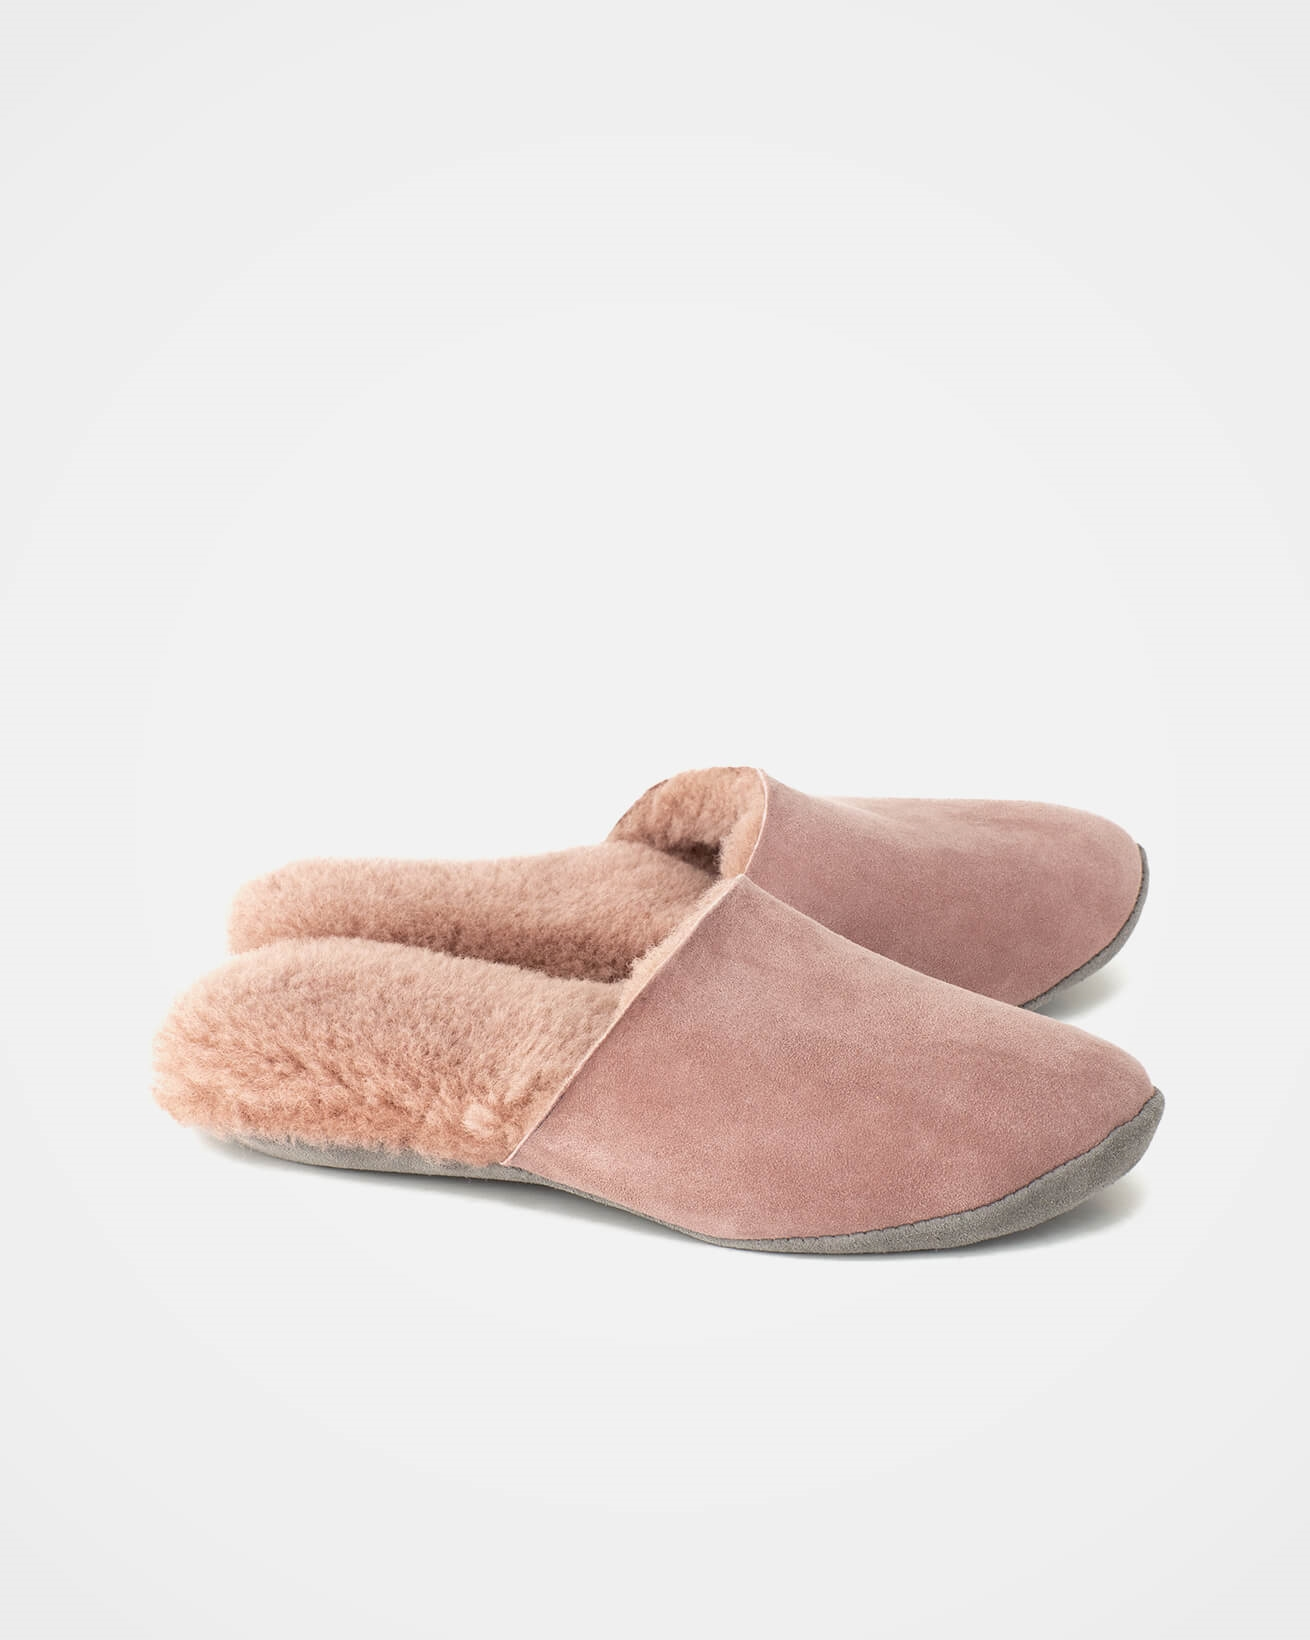 7612_turned-slipper_dusky-pink_pair_web.jpg